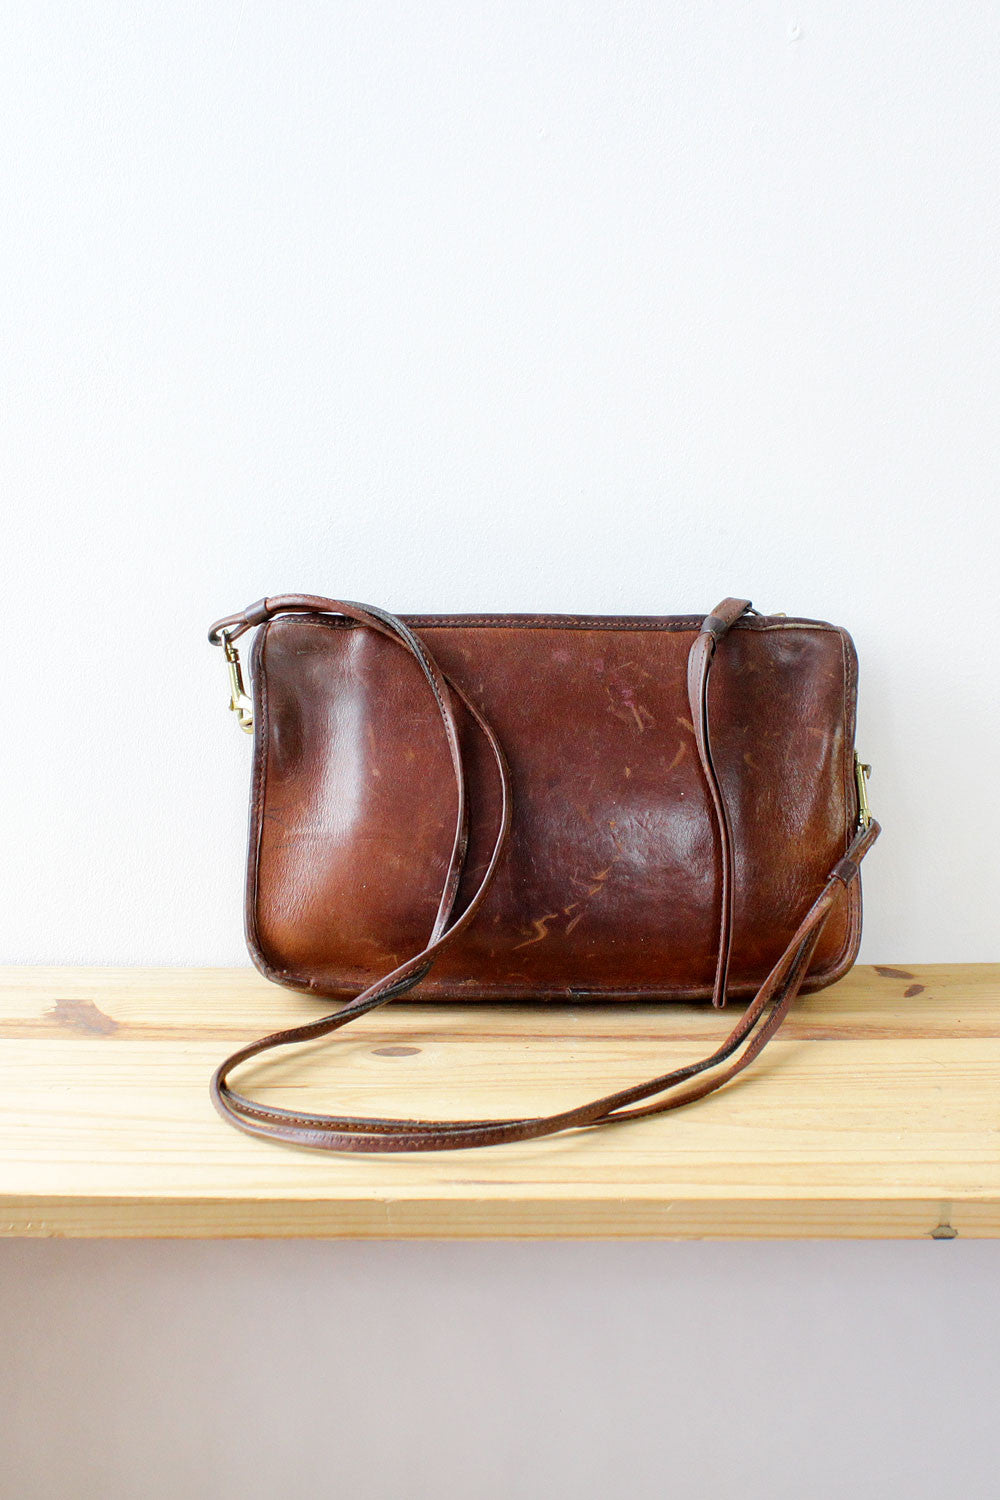 70s Coach NYC Chocolate Leather Bag